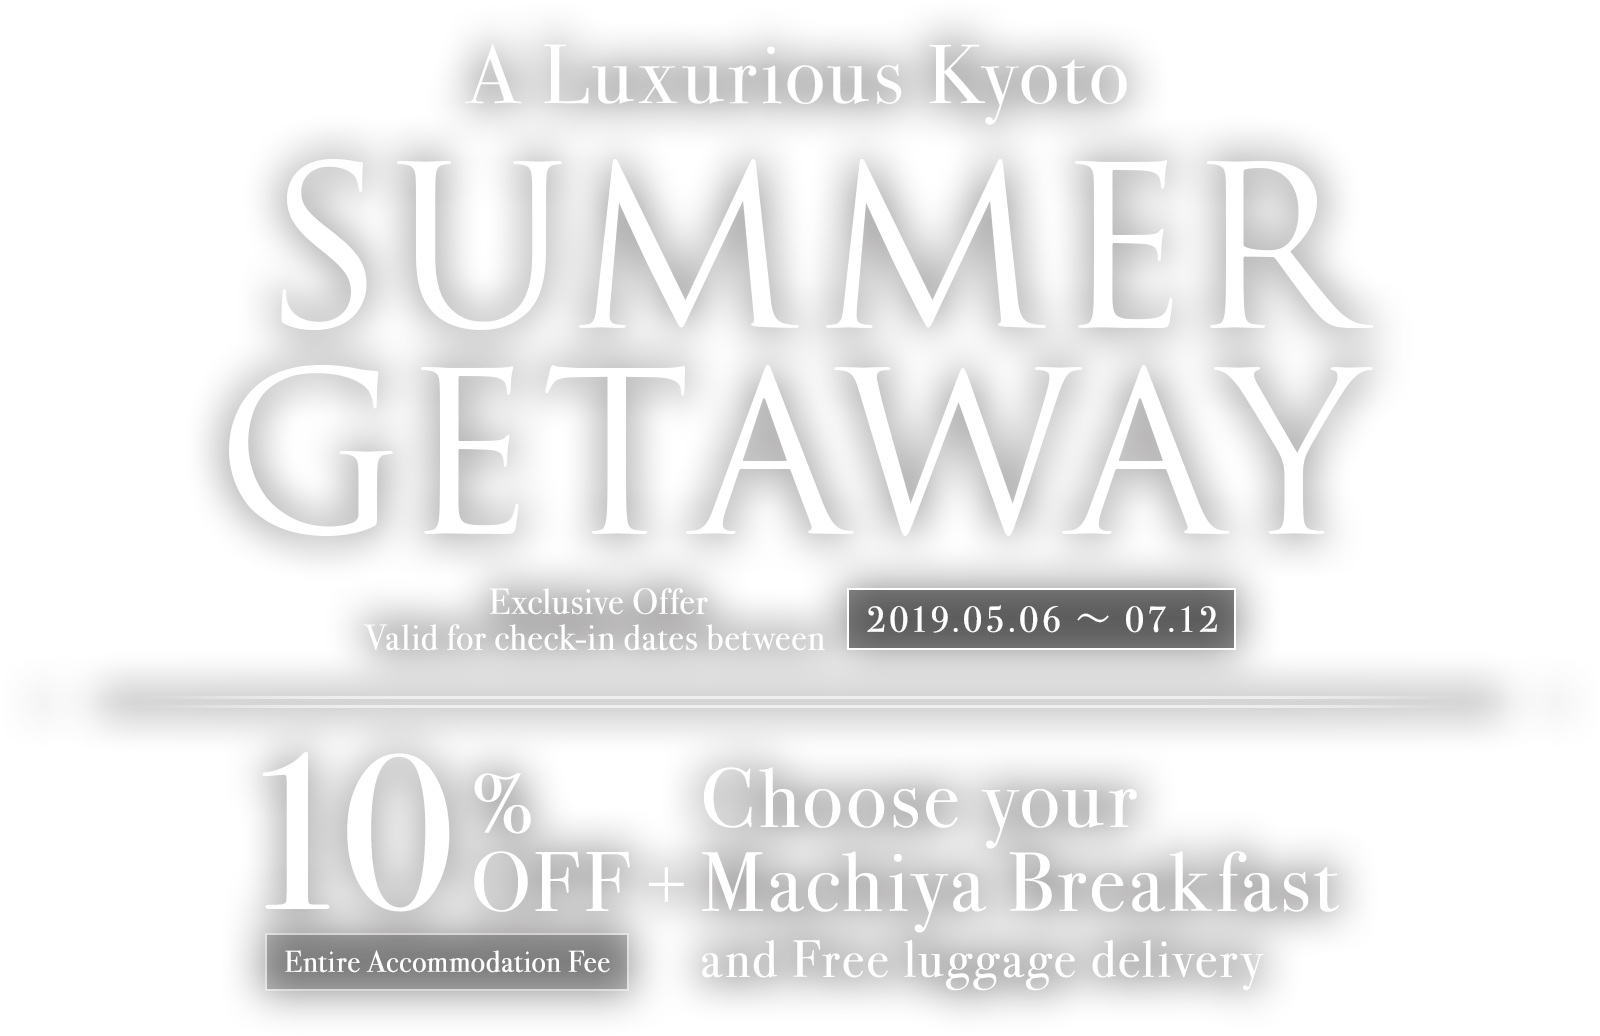 Kyoto Summer Holiday Deals | 10% Discount + Free Breakfast | Limited Time